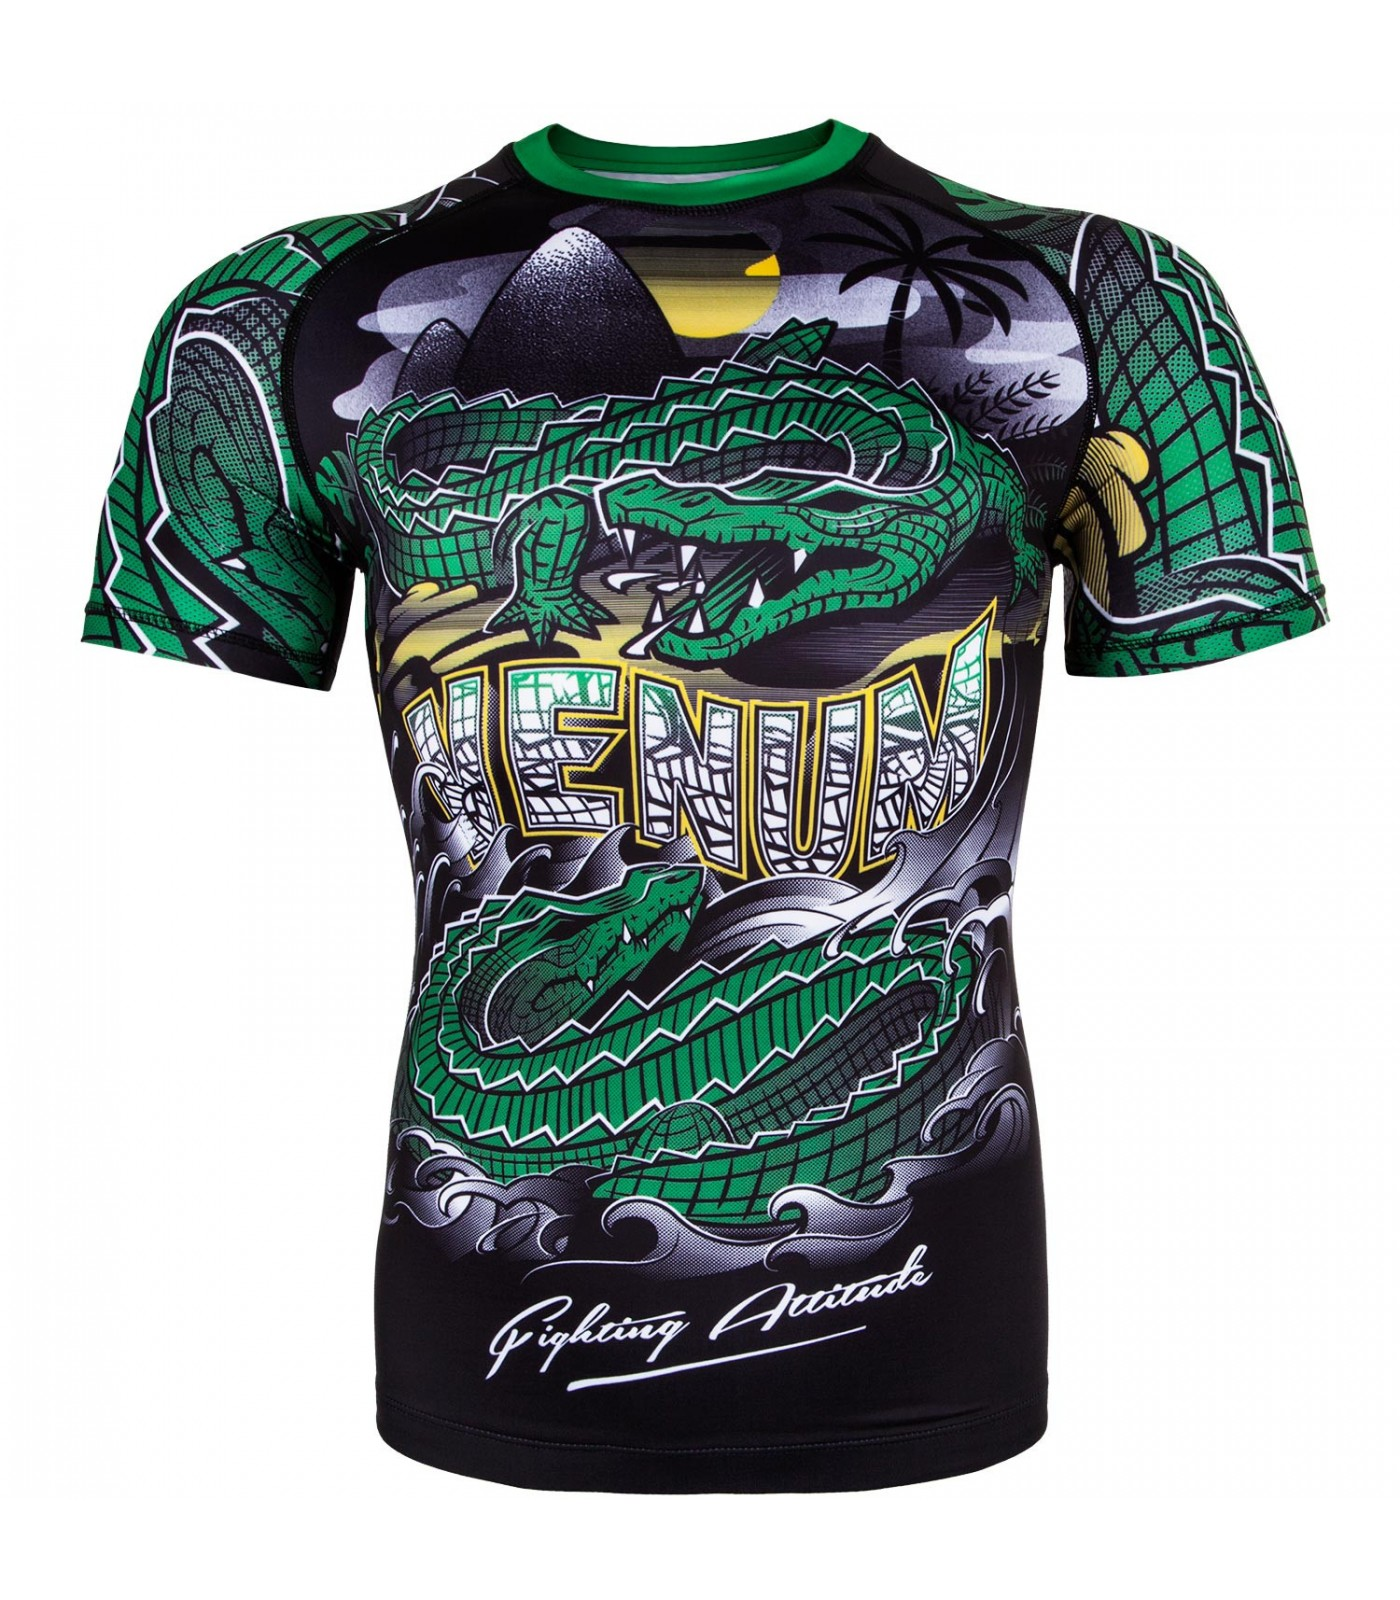 Рашгард - Venum Crocodile Rashguard - Black/Green - Short Sleeves​